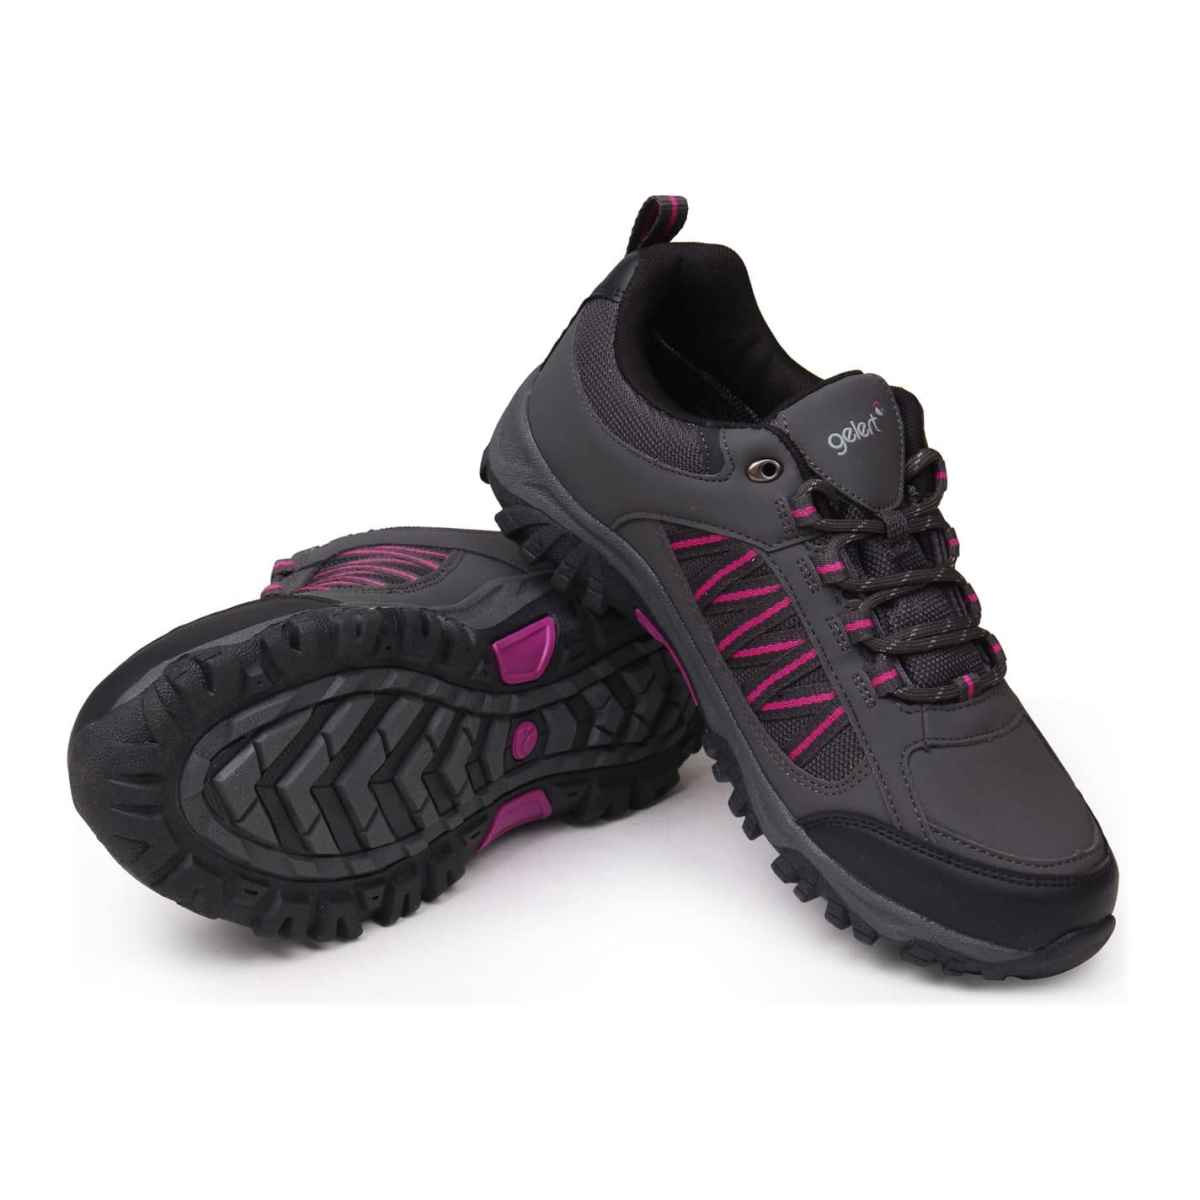 Gelert Horizon Low Damen Waterproof Wanderschuhe